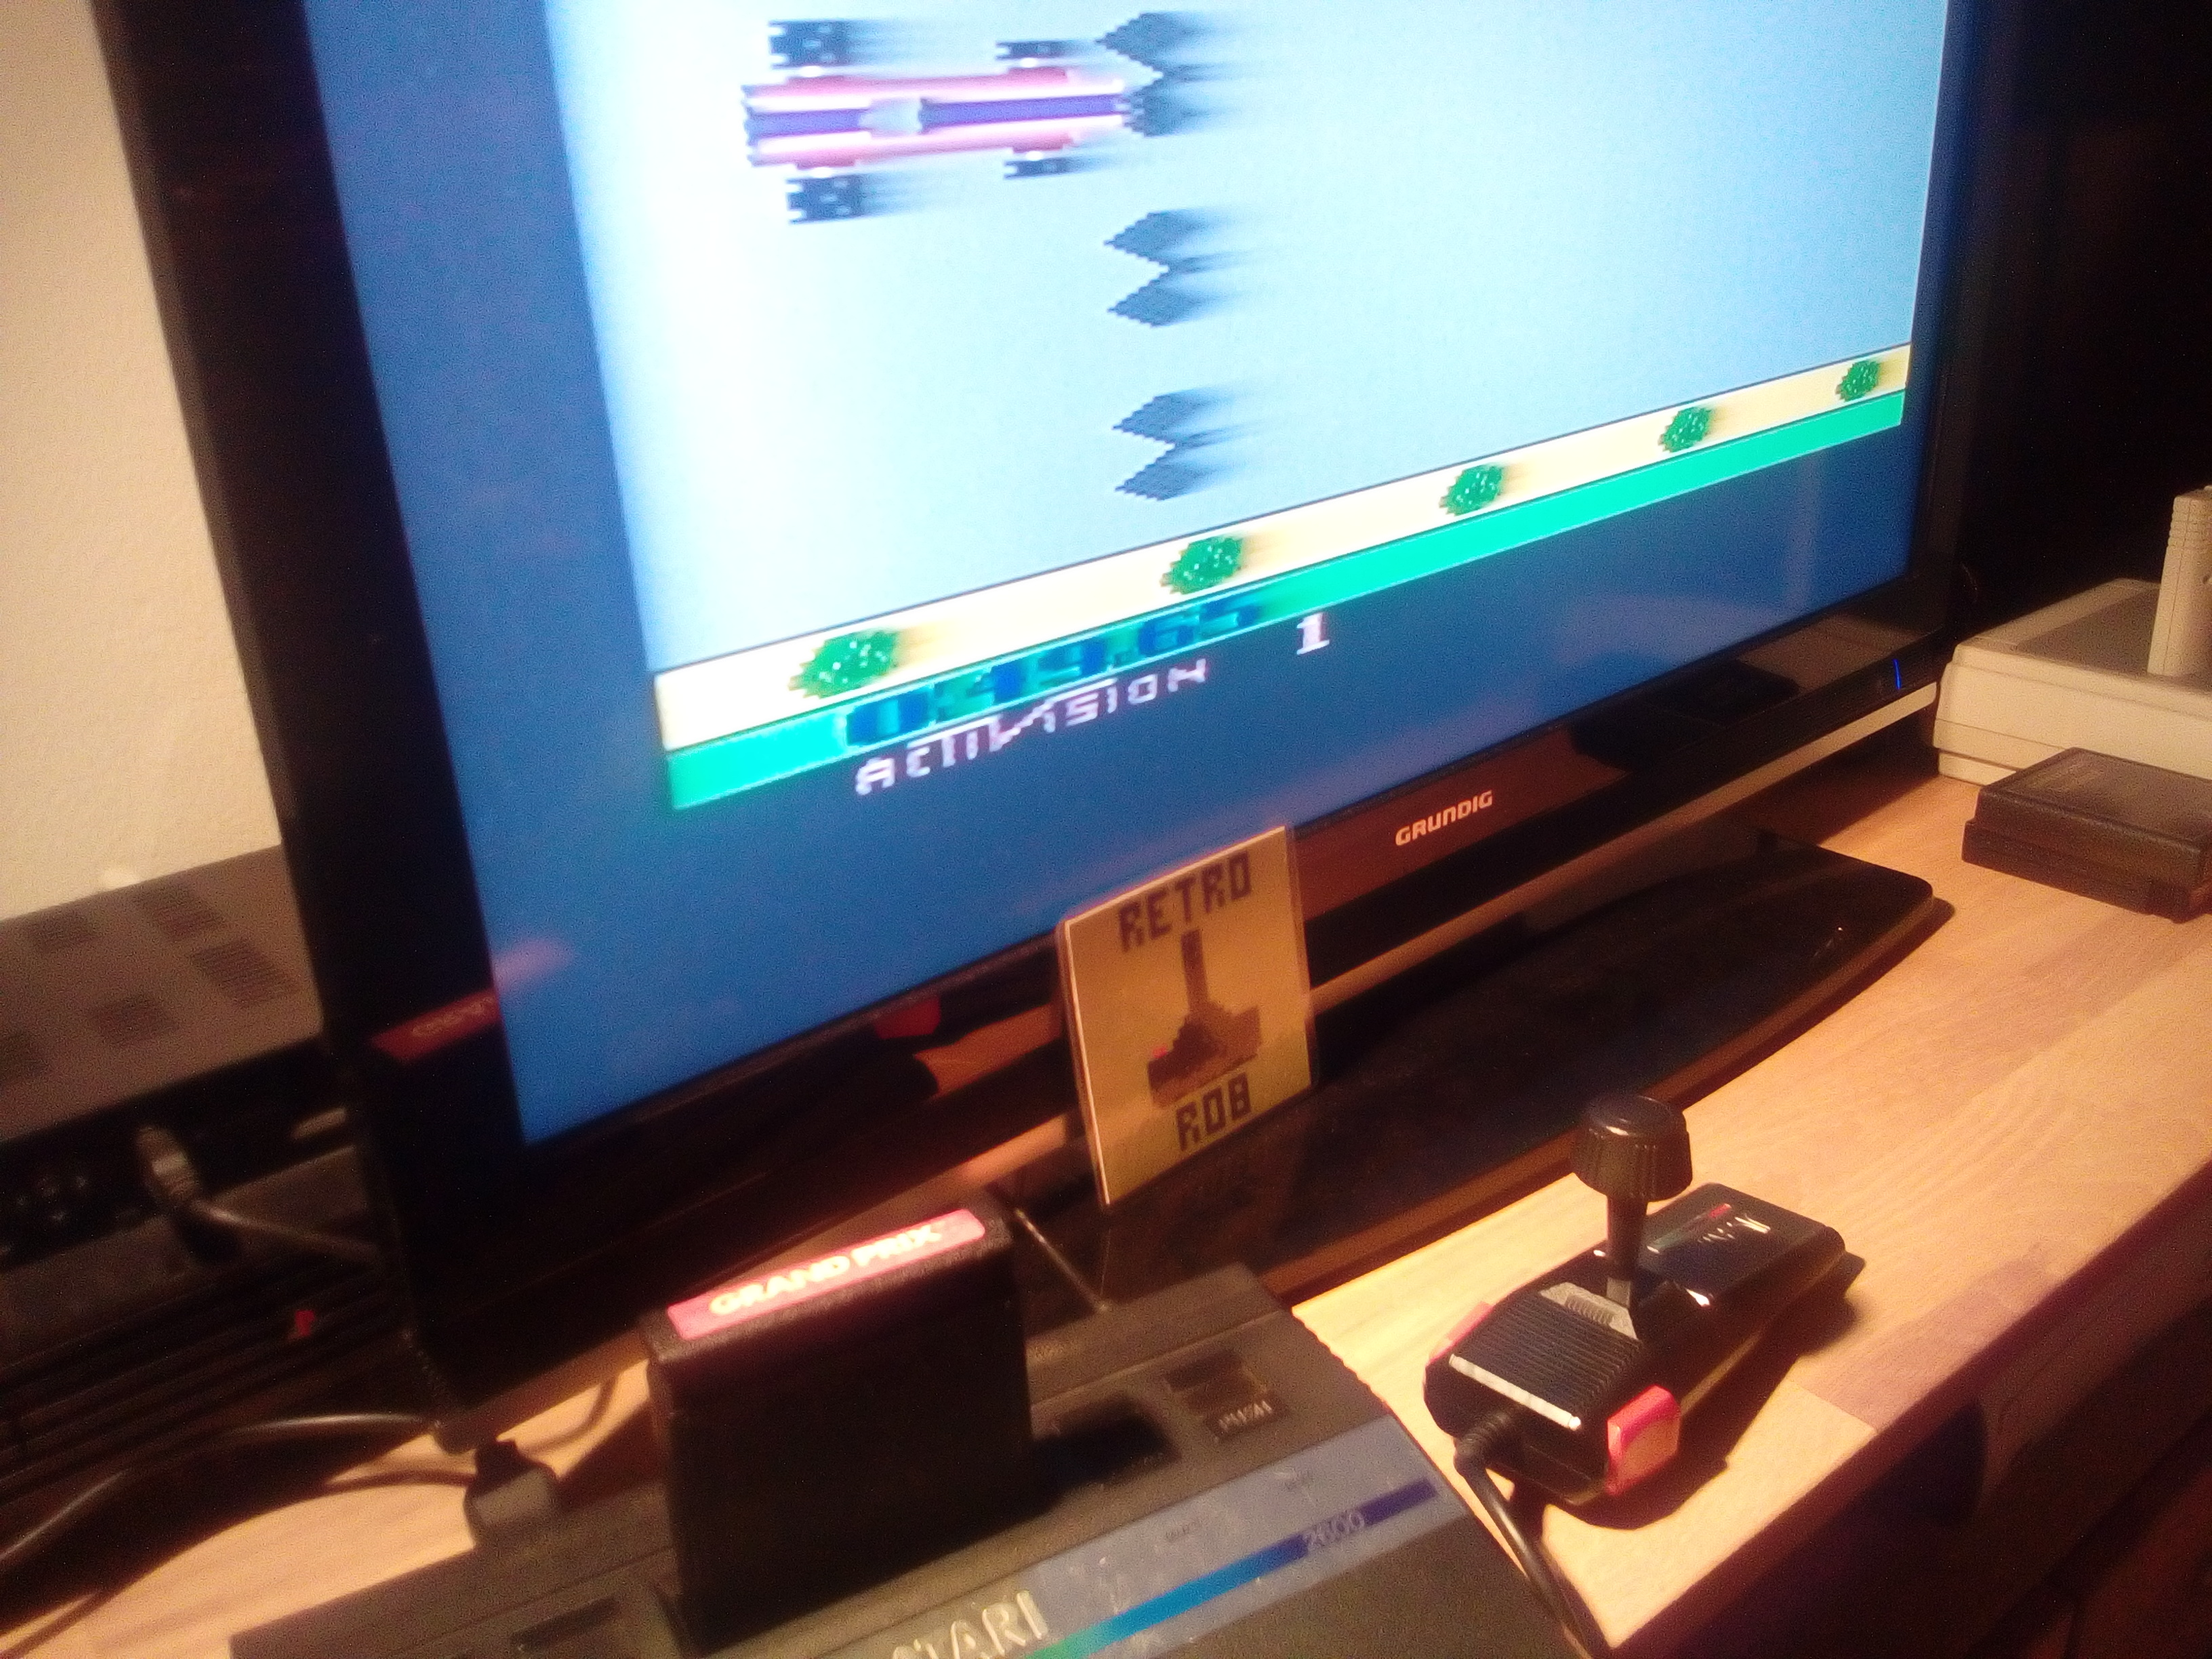 Grand Prix: Game 1 time of 0:00:49.65